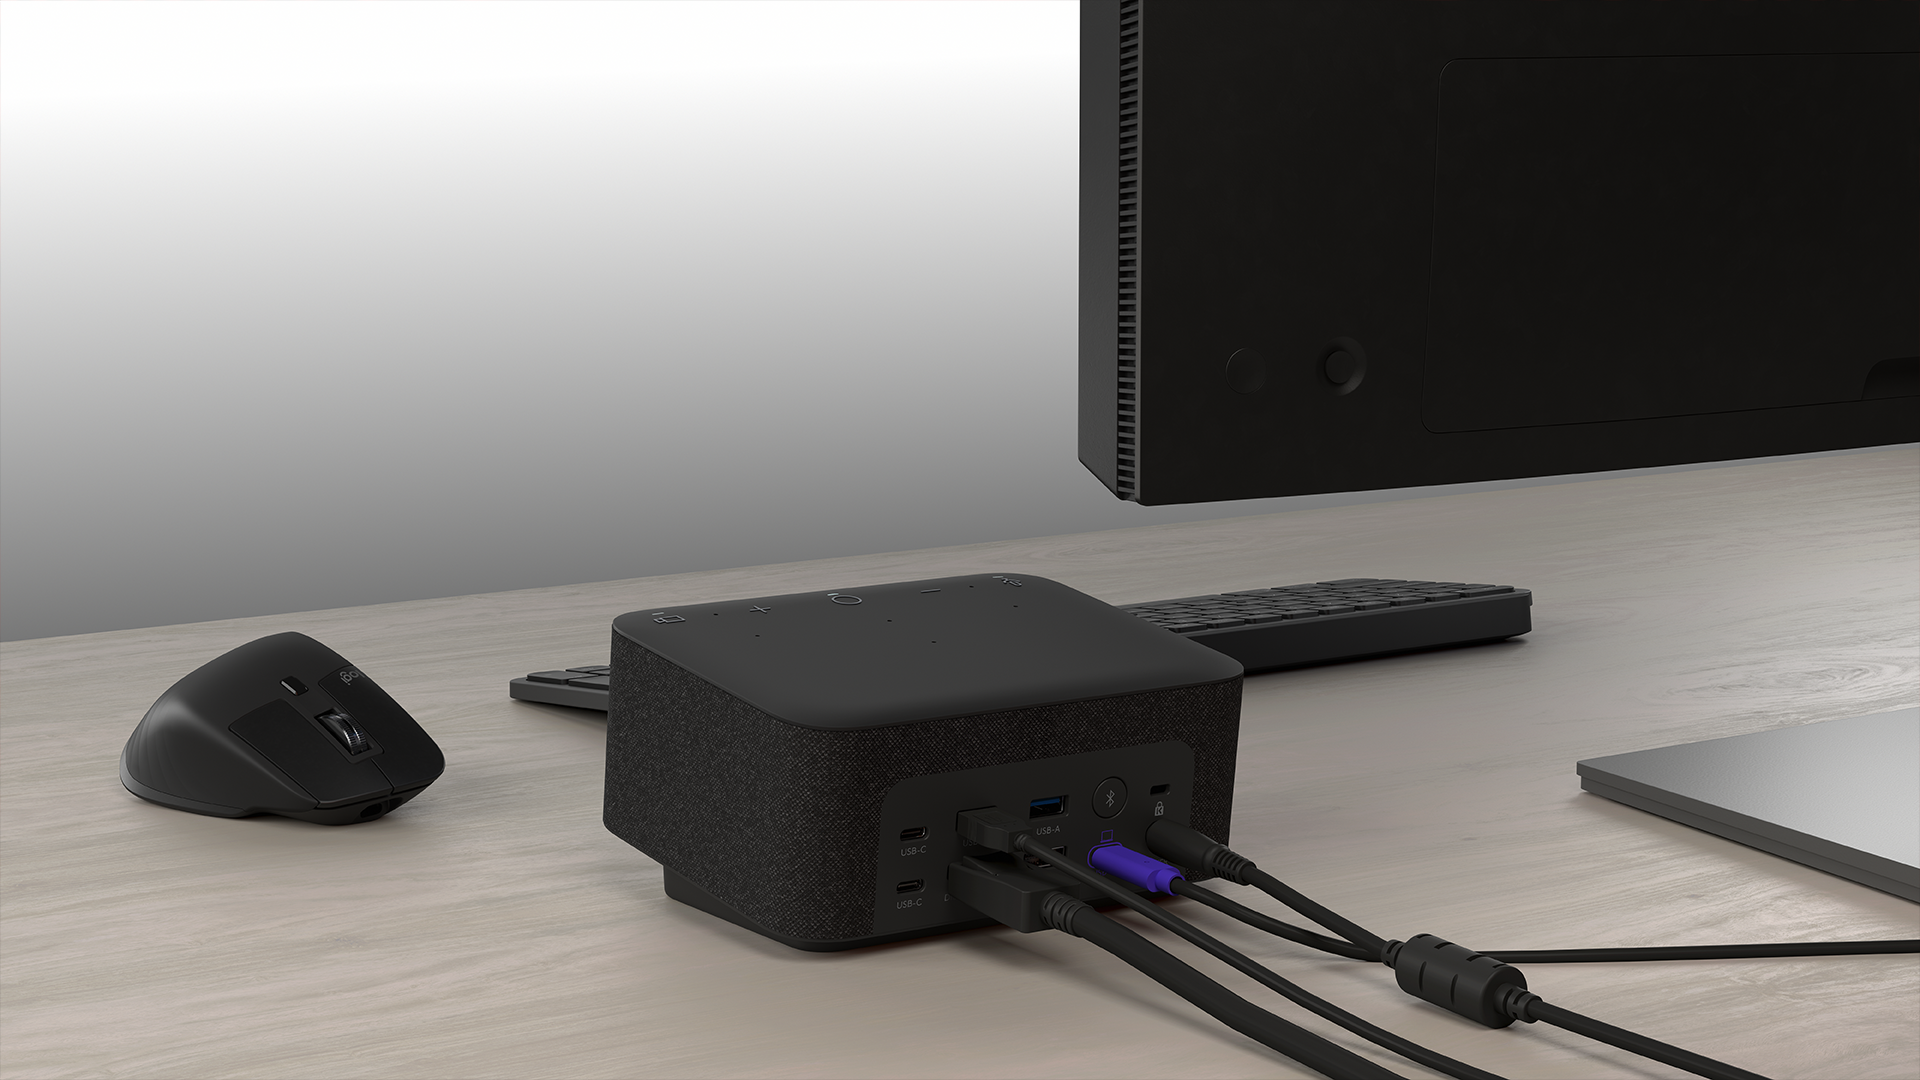 The Logi Dock's backside with several USB ports.